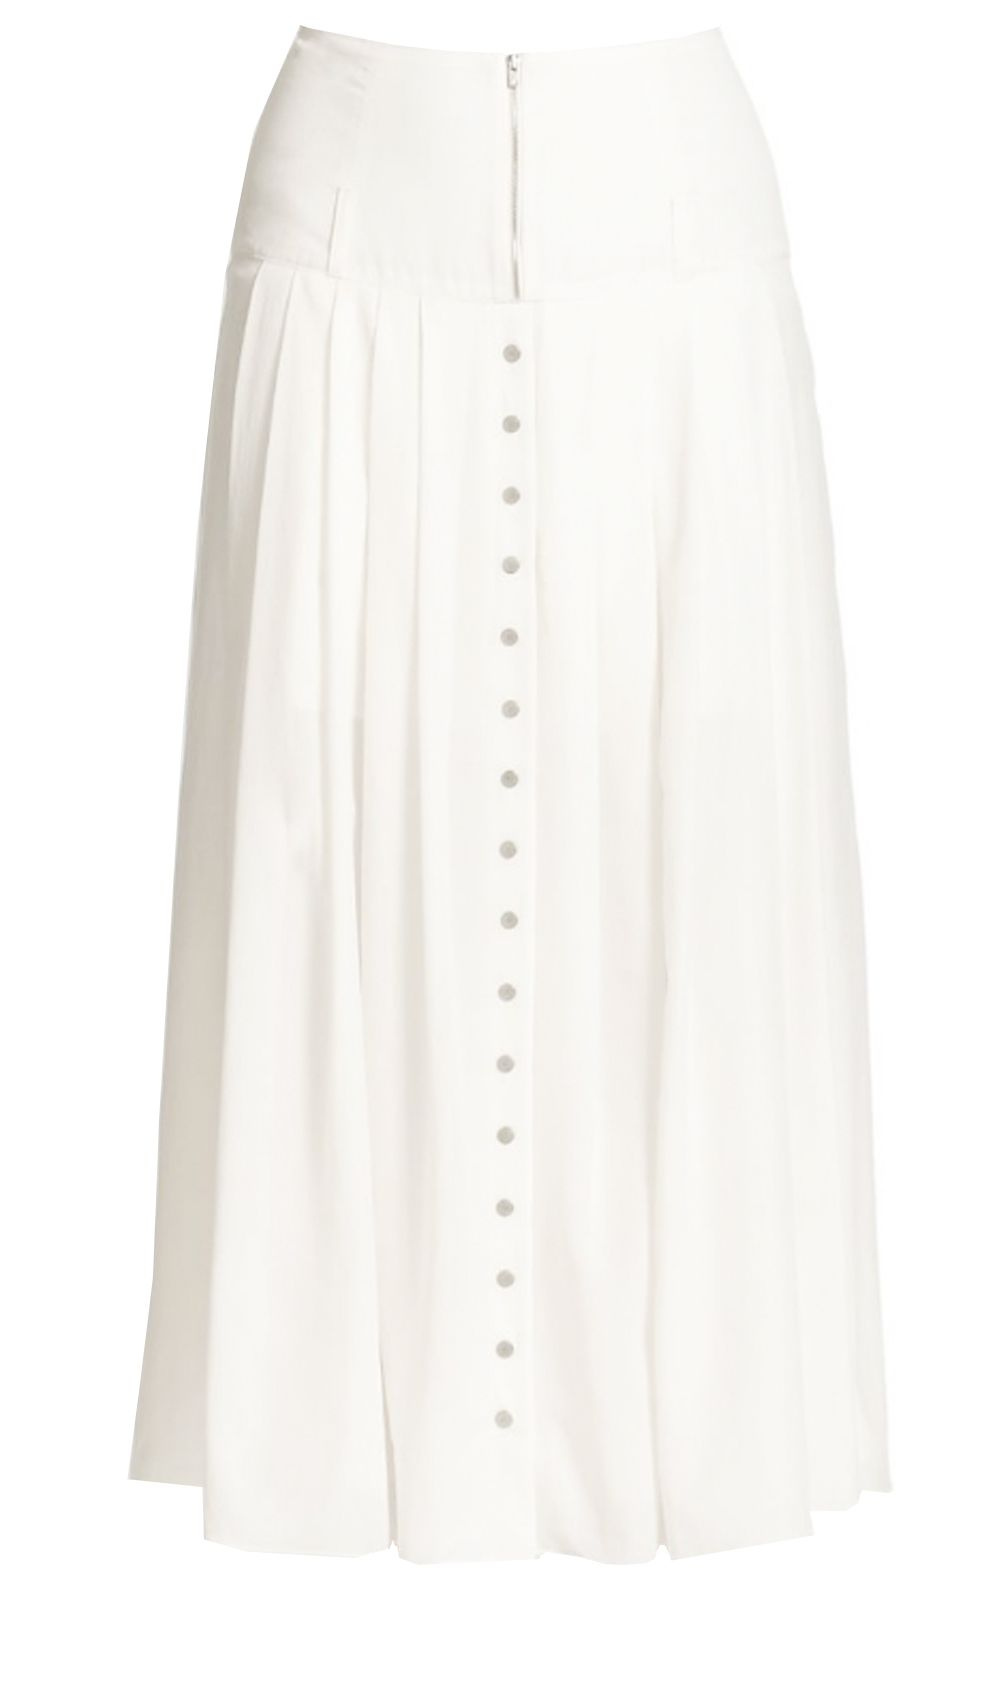 bb548e757c White Cotton Button Front Skirt pleated with yoke | Elizabeth's Custom  Skirts